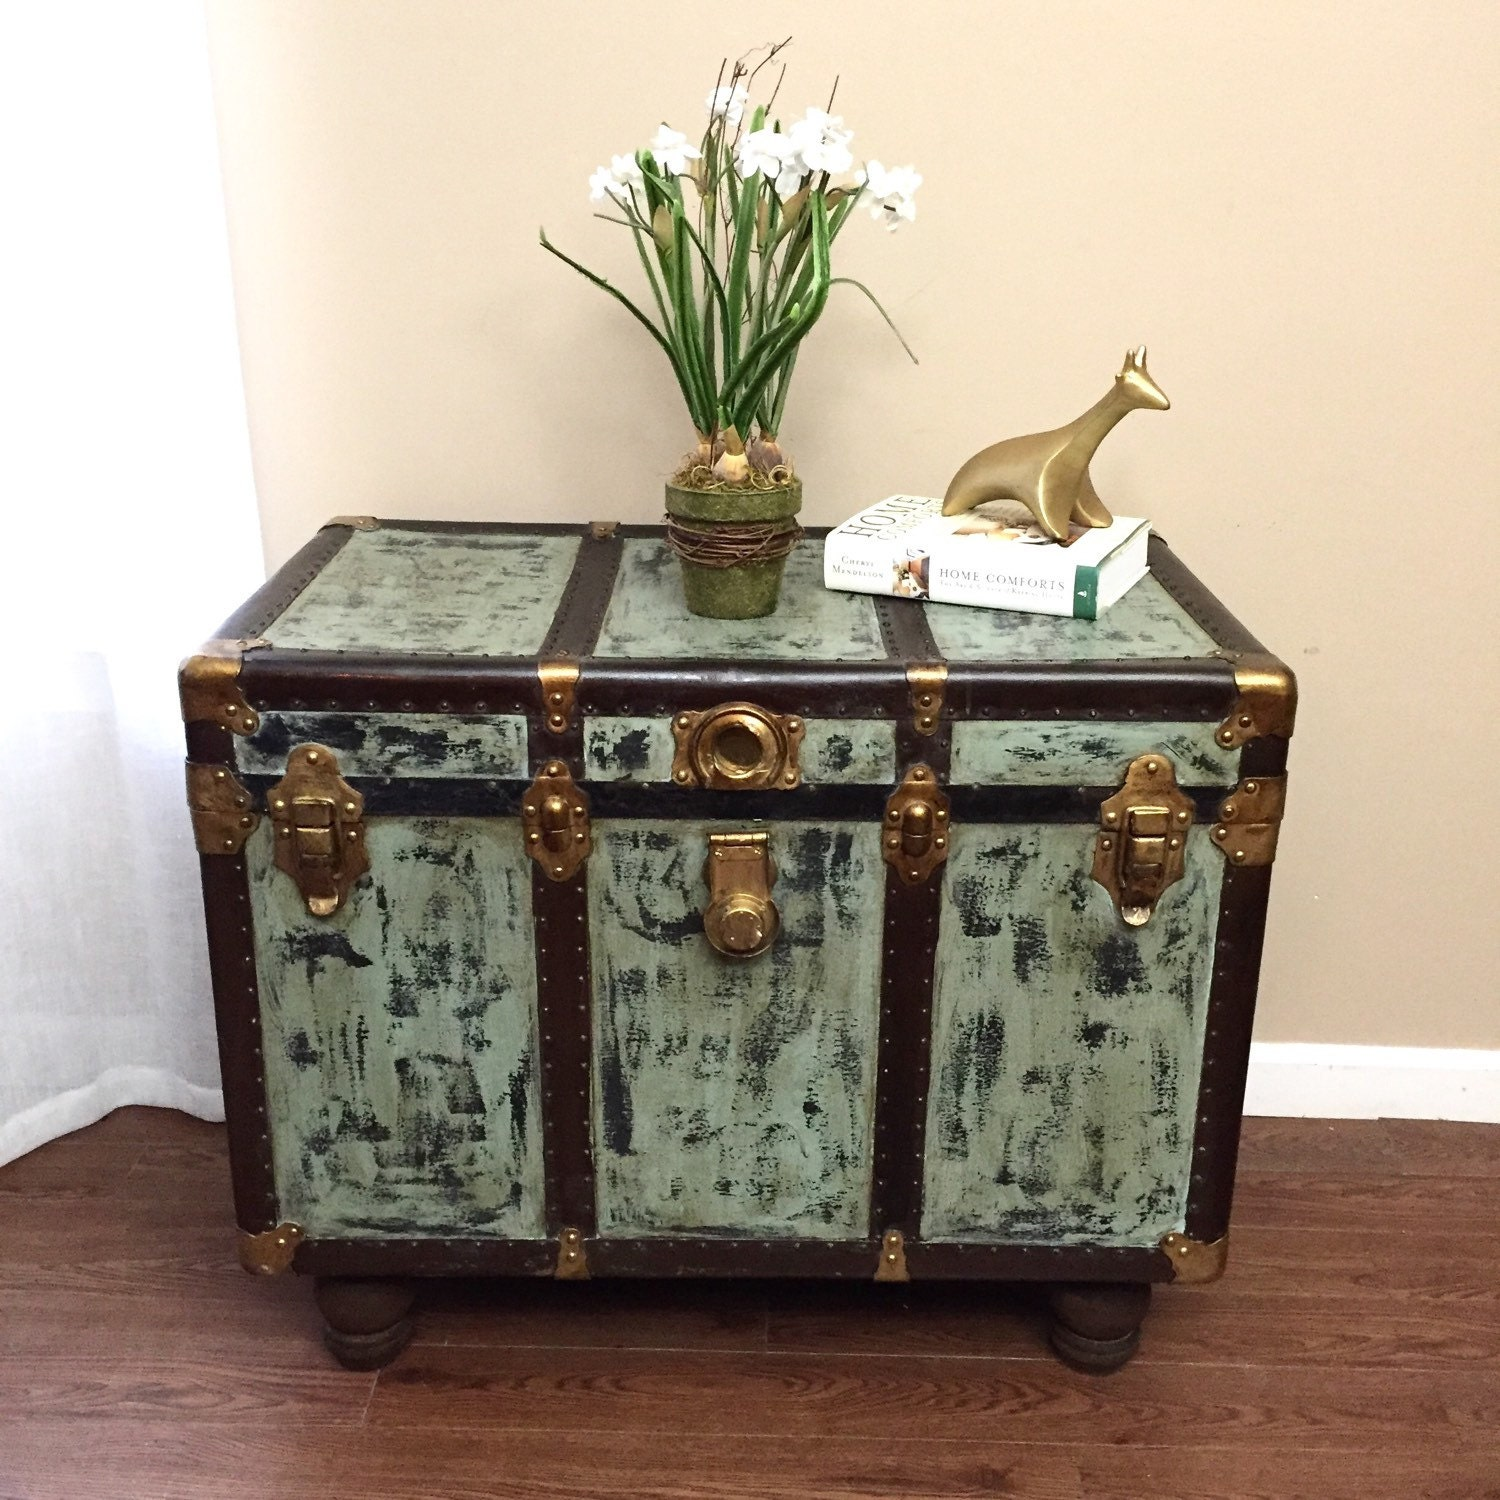 Antique Trunks As Coffee Tables: SOLDCoffee Table Vintage Steamer Trunk Coffee Table Side